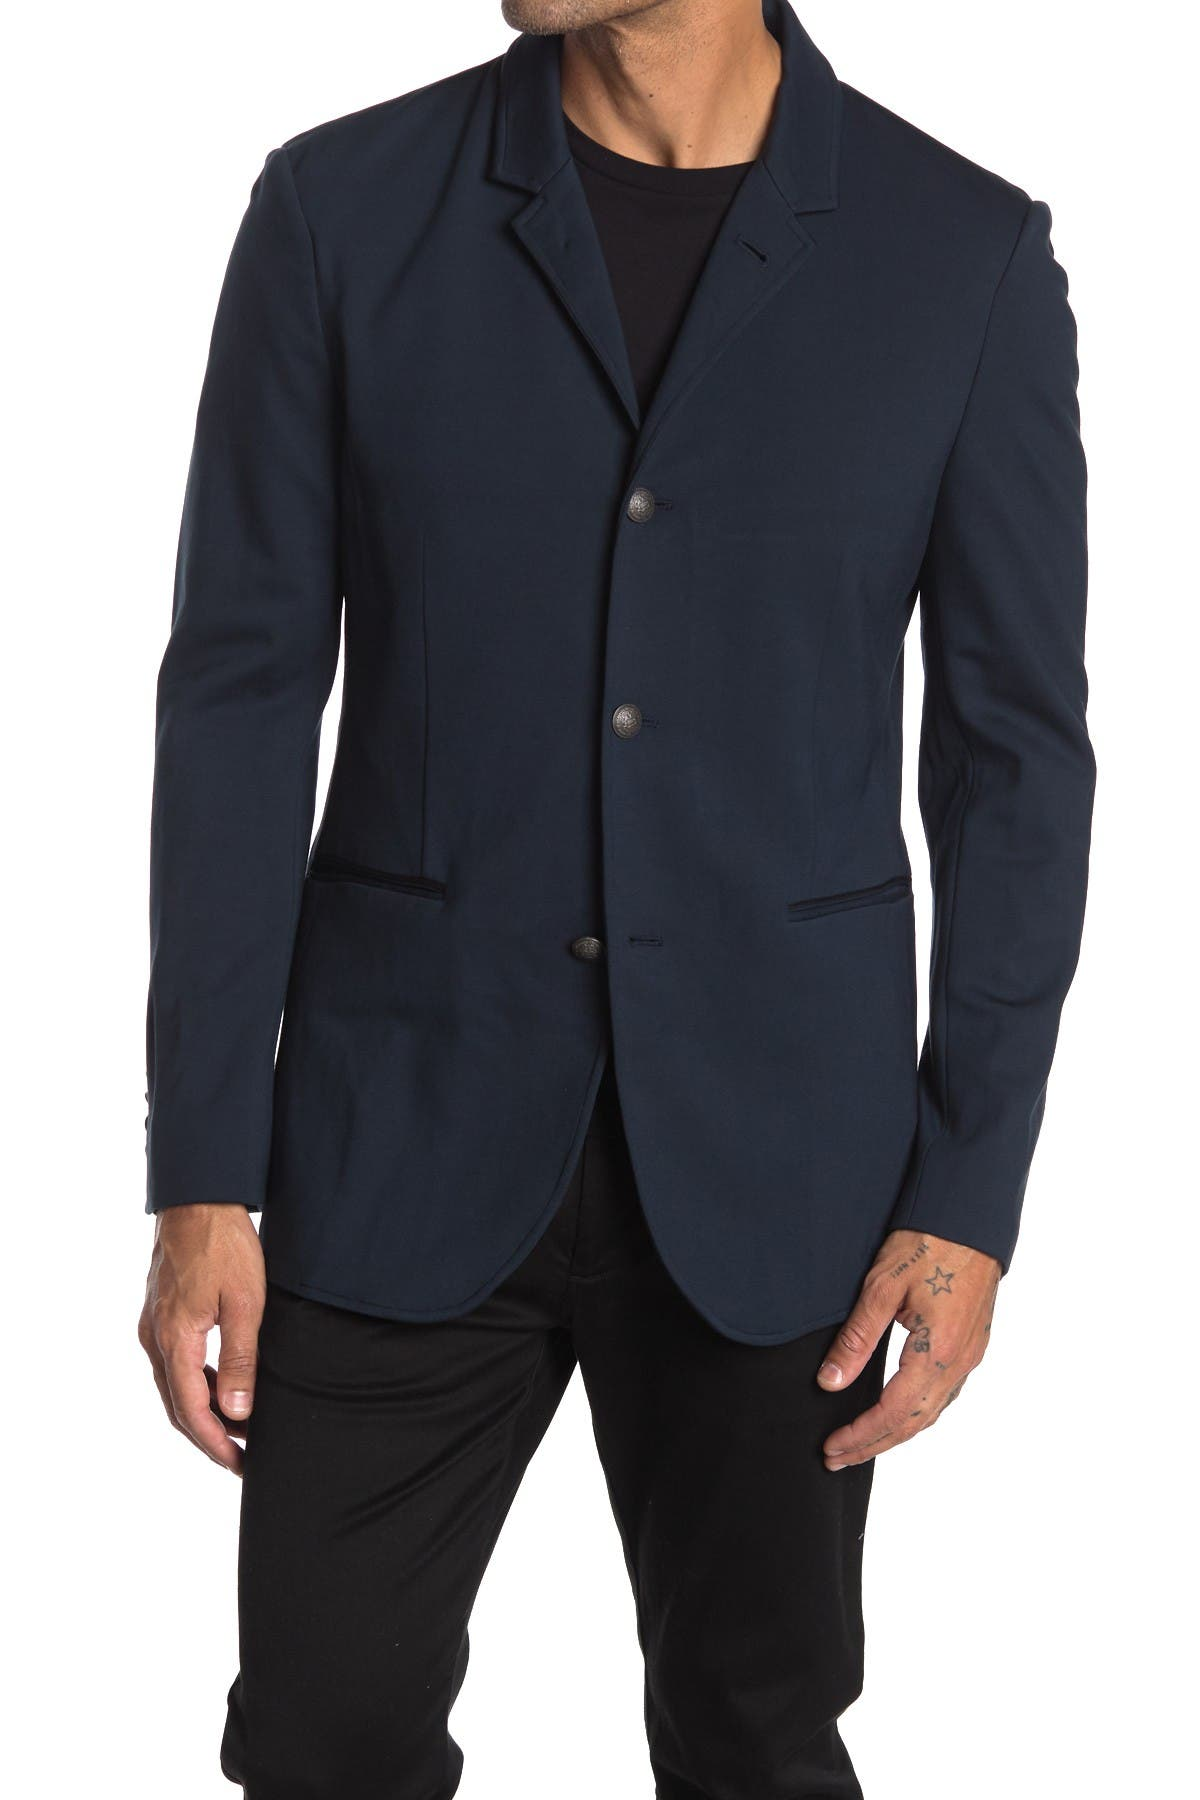 Image of John Varvatos Collection Wills 2-4 Button Soft Jacket